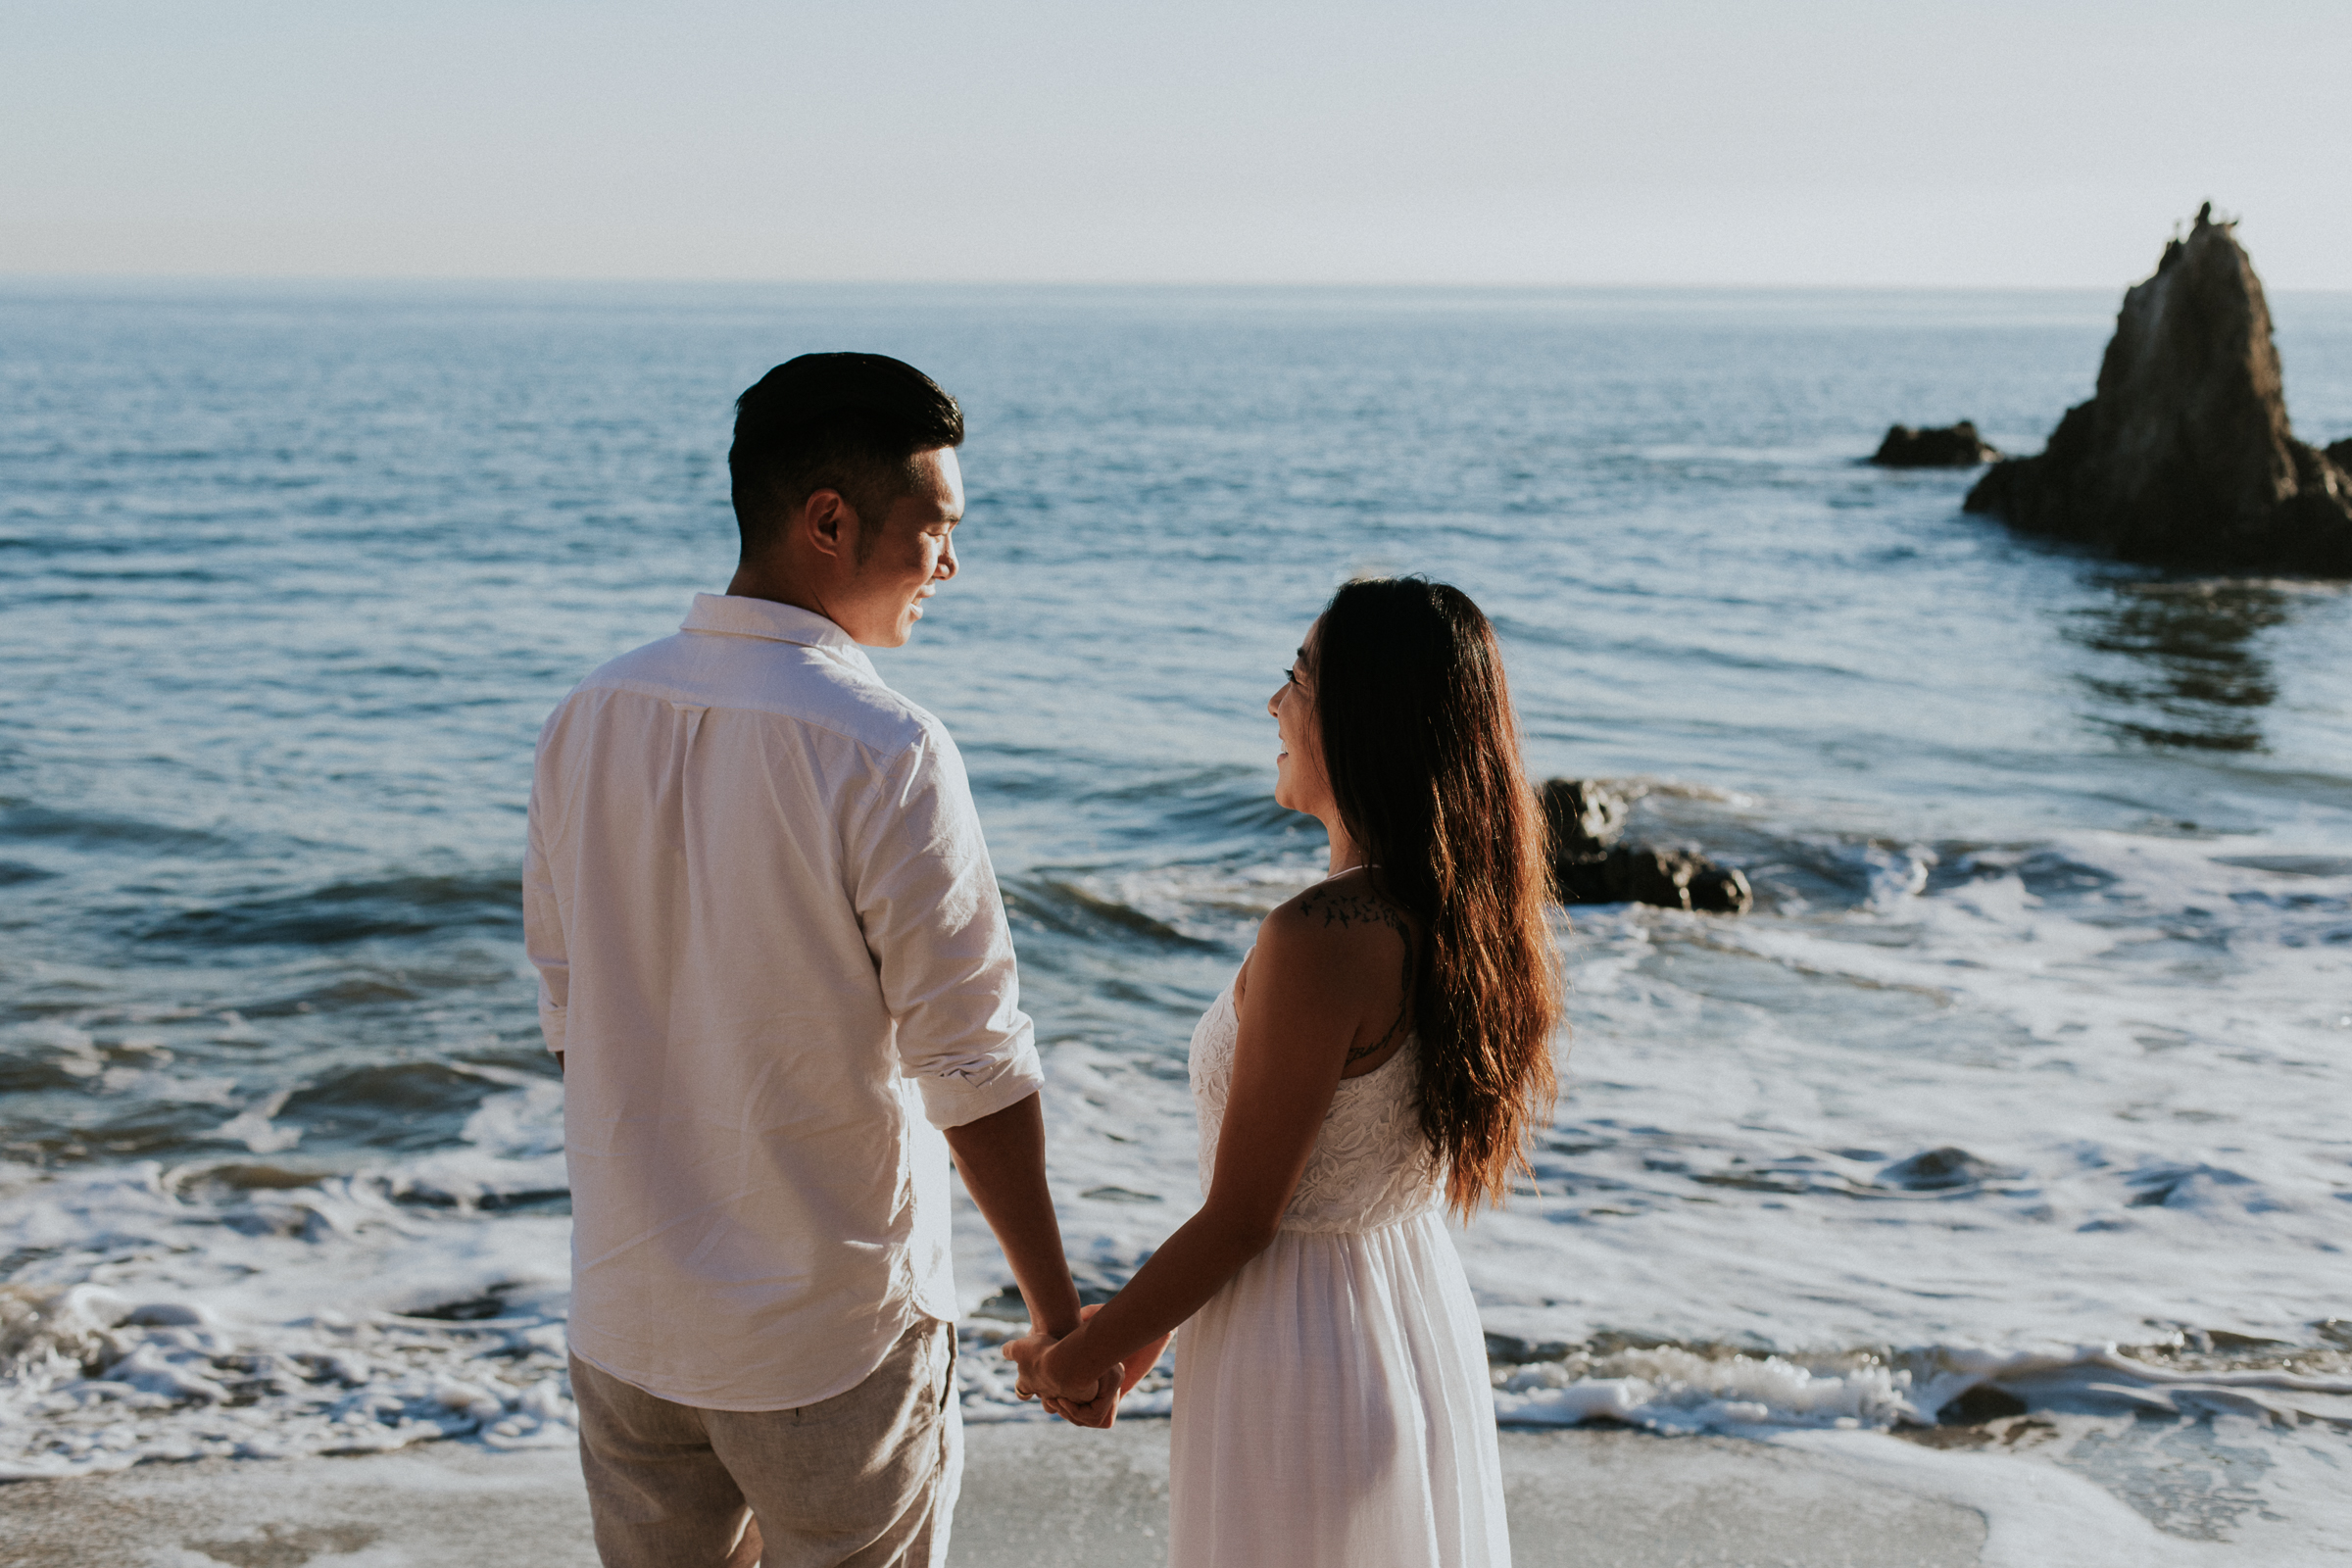 Malibu-El-Matador-State-Beach-Sunset-Engagement-Photos-Los-Angeles-Documentary-Wedding-Photographer-6.jpg